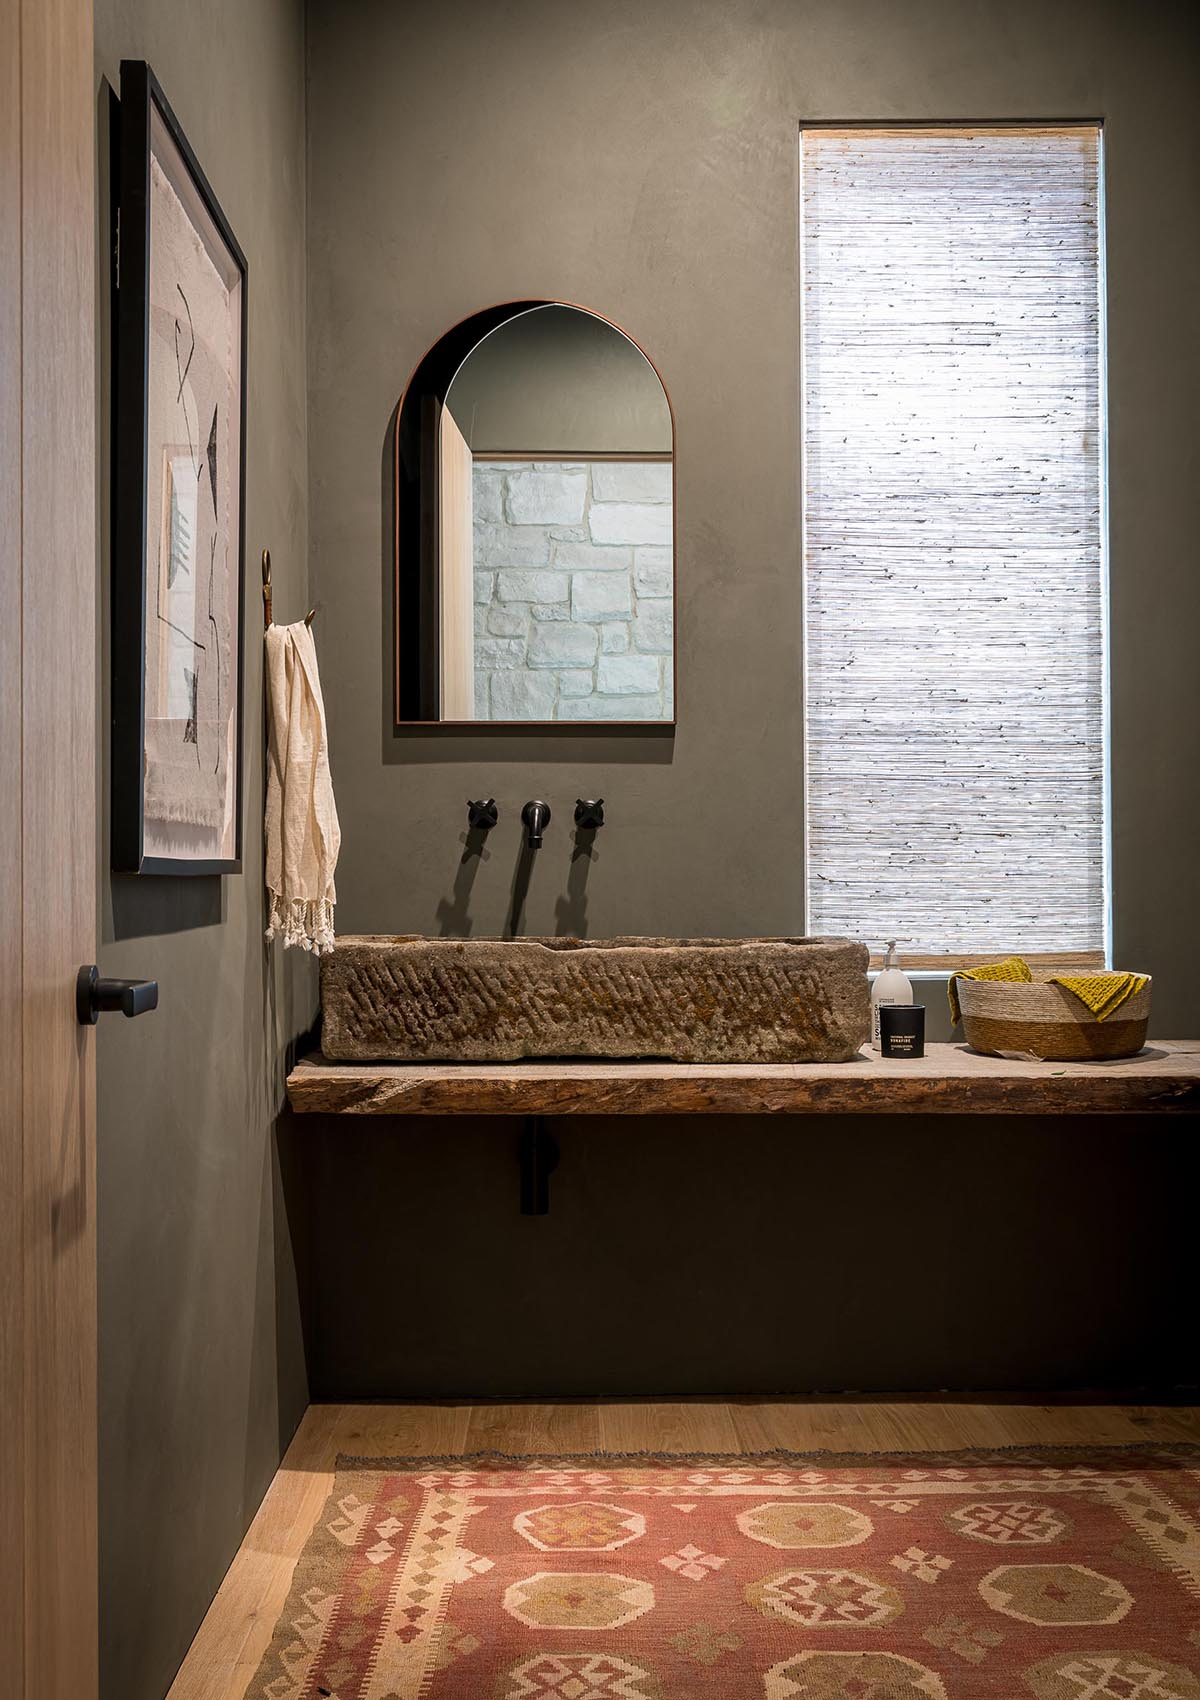 A contemporary farmhouse inspired bathroom with stone sink and live edge wood vanity.